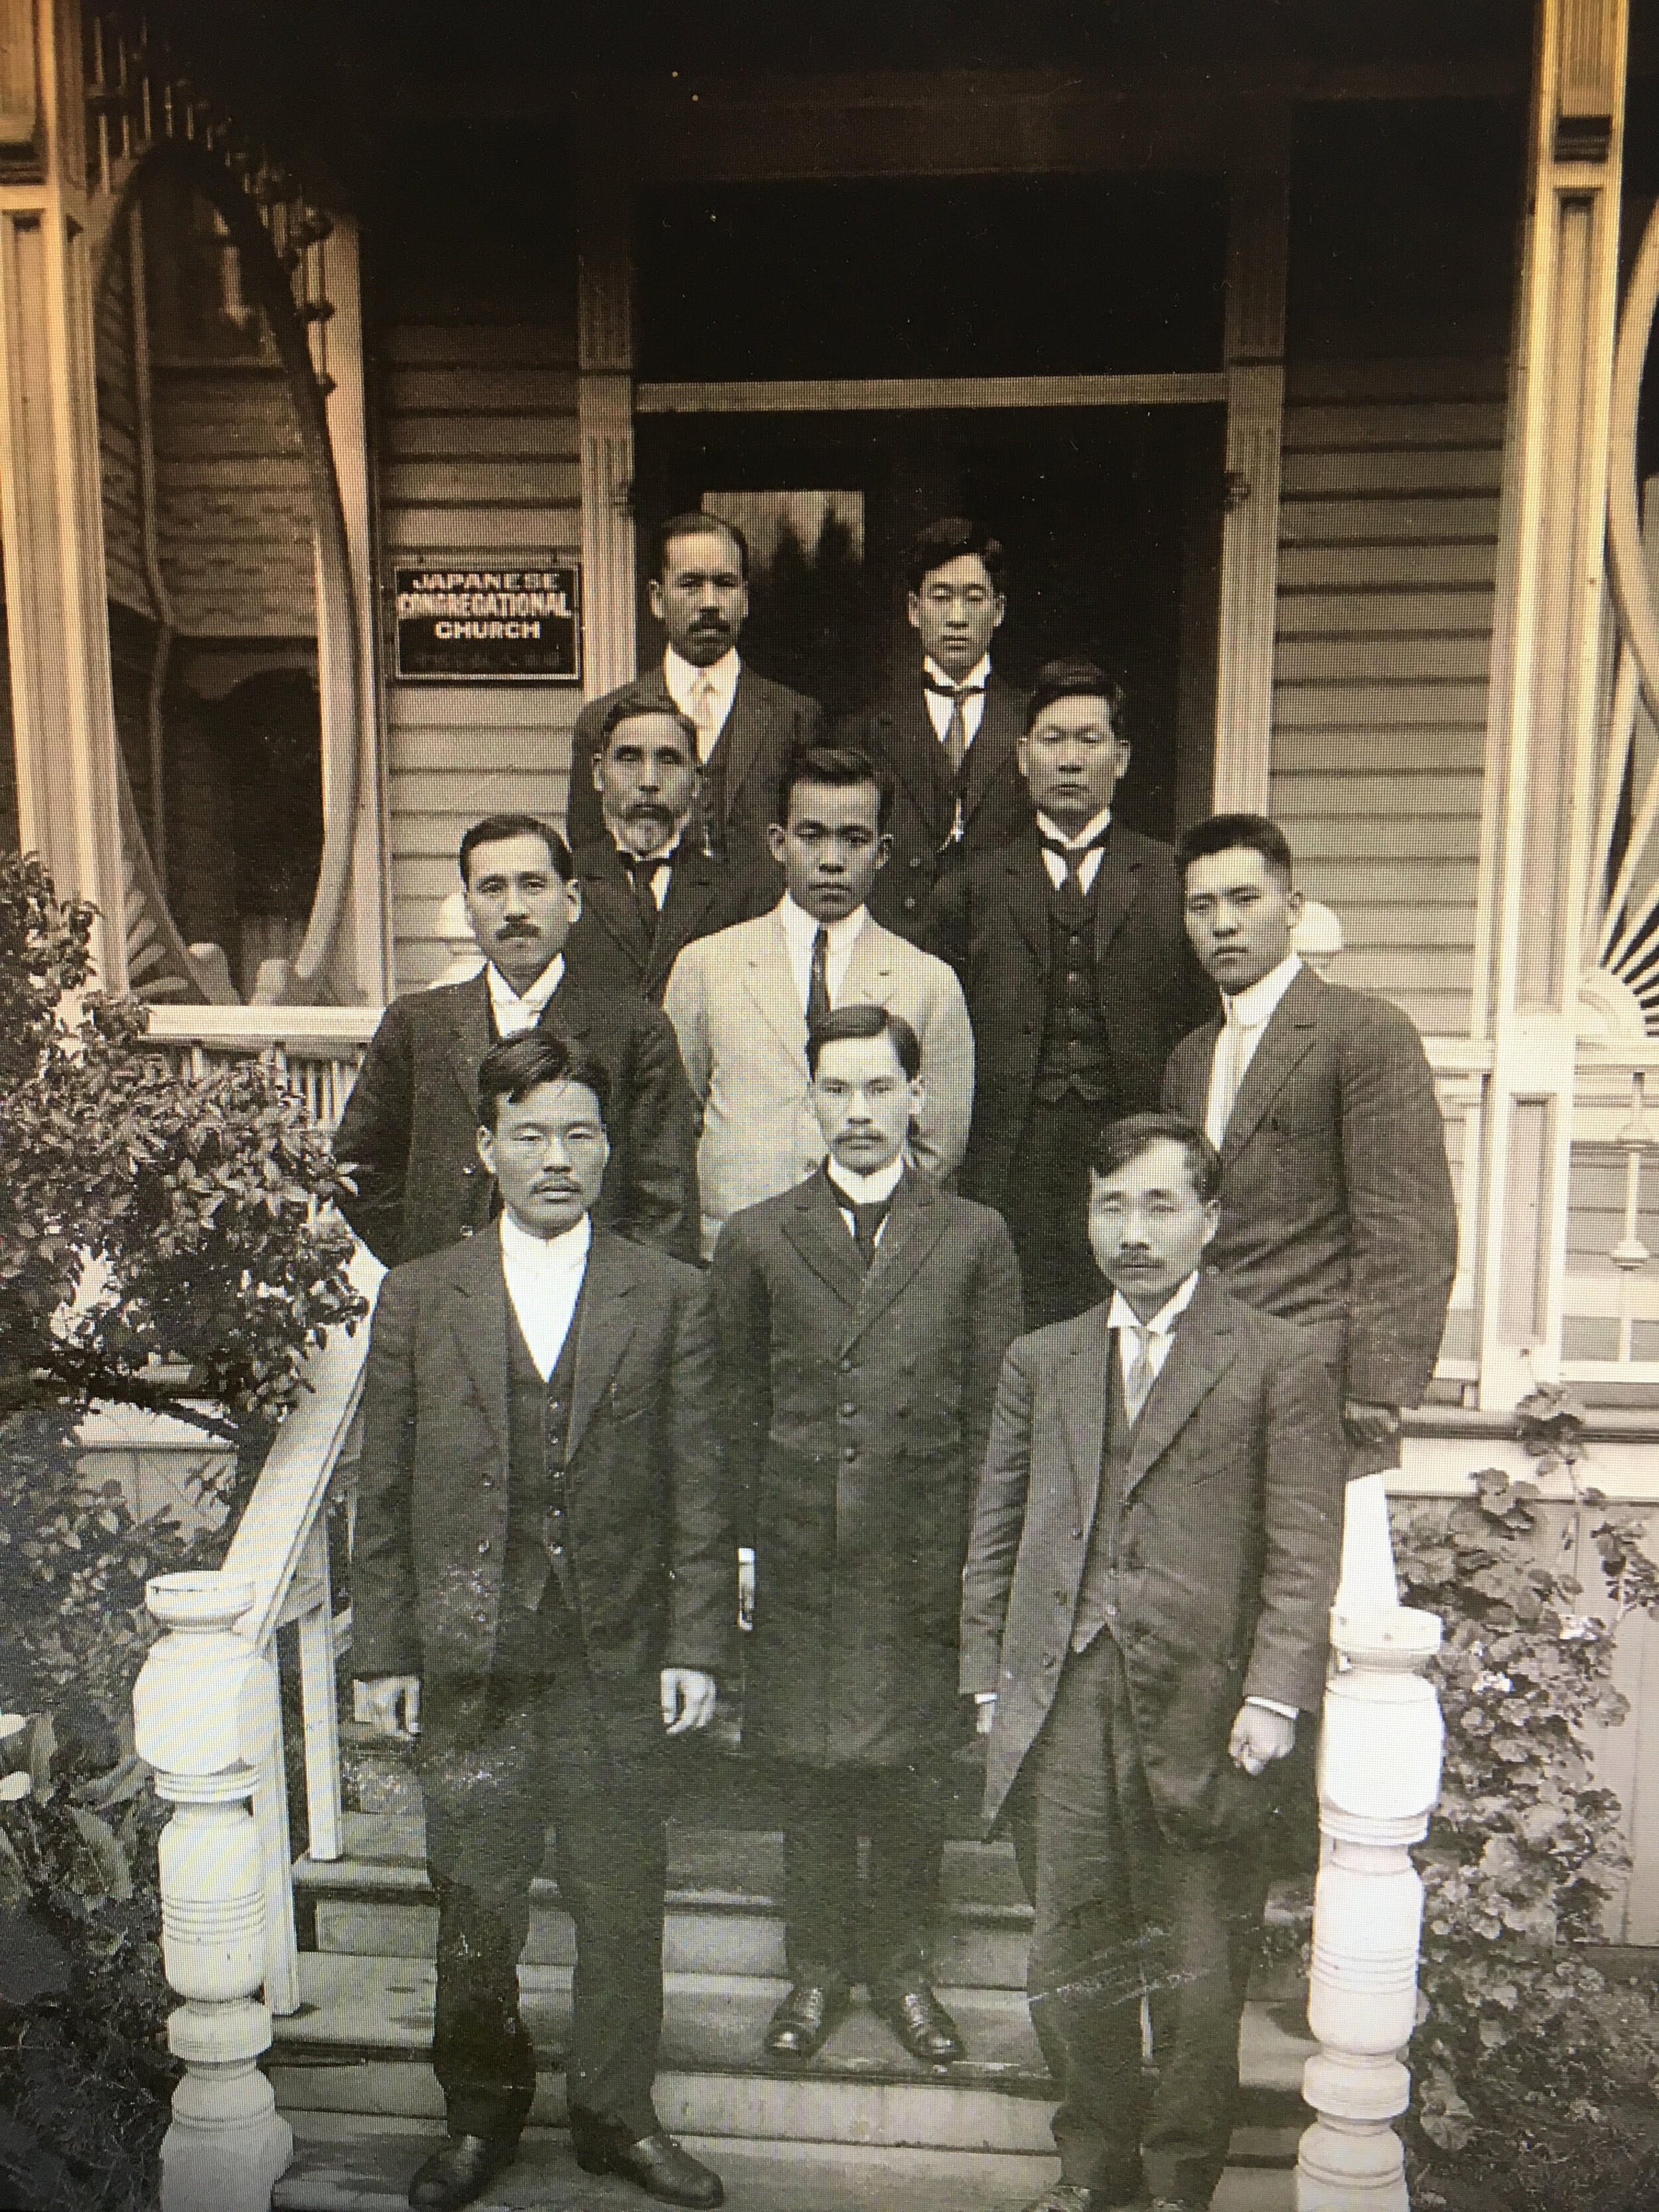 Original members of the Japanese Congregational Church in 1912, today known as Puna Covenant Church.